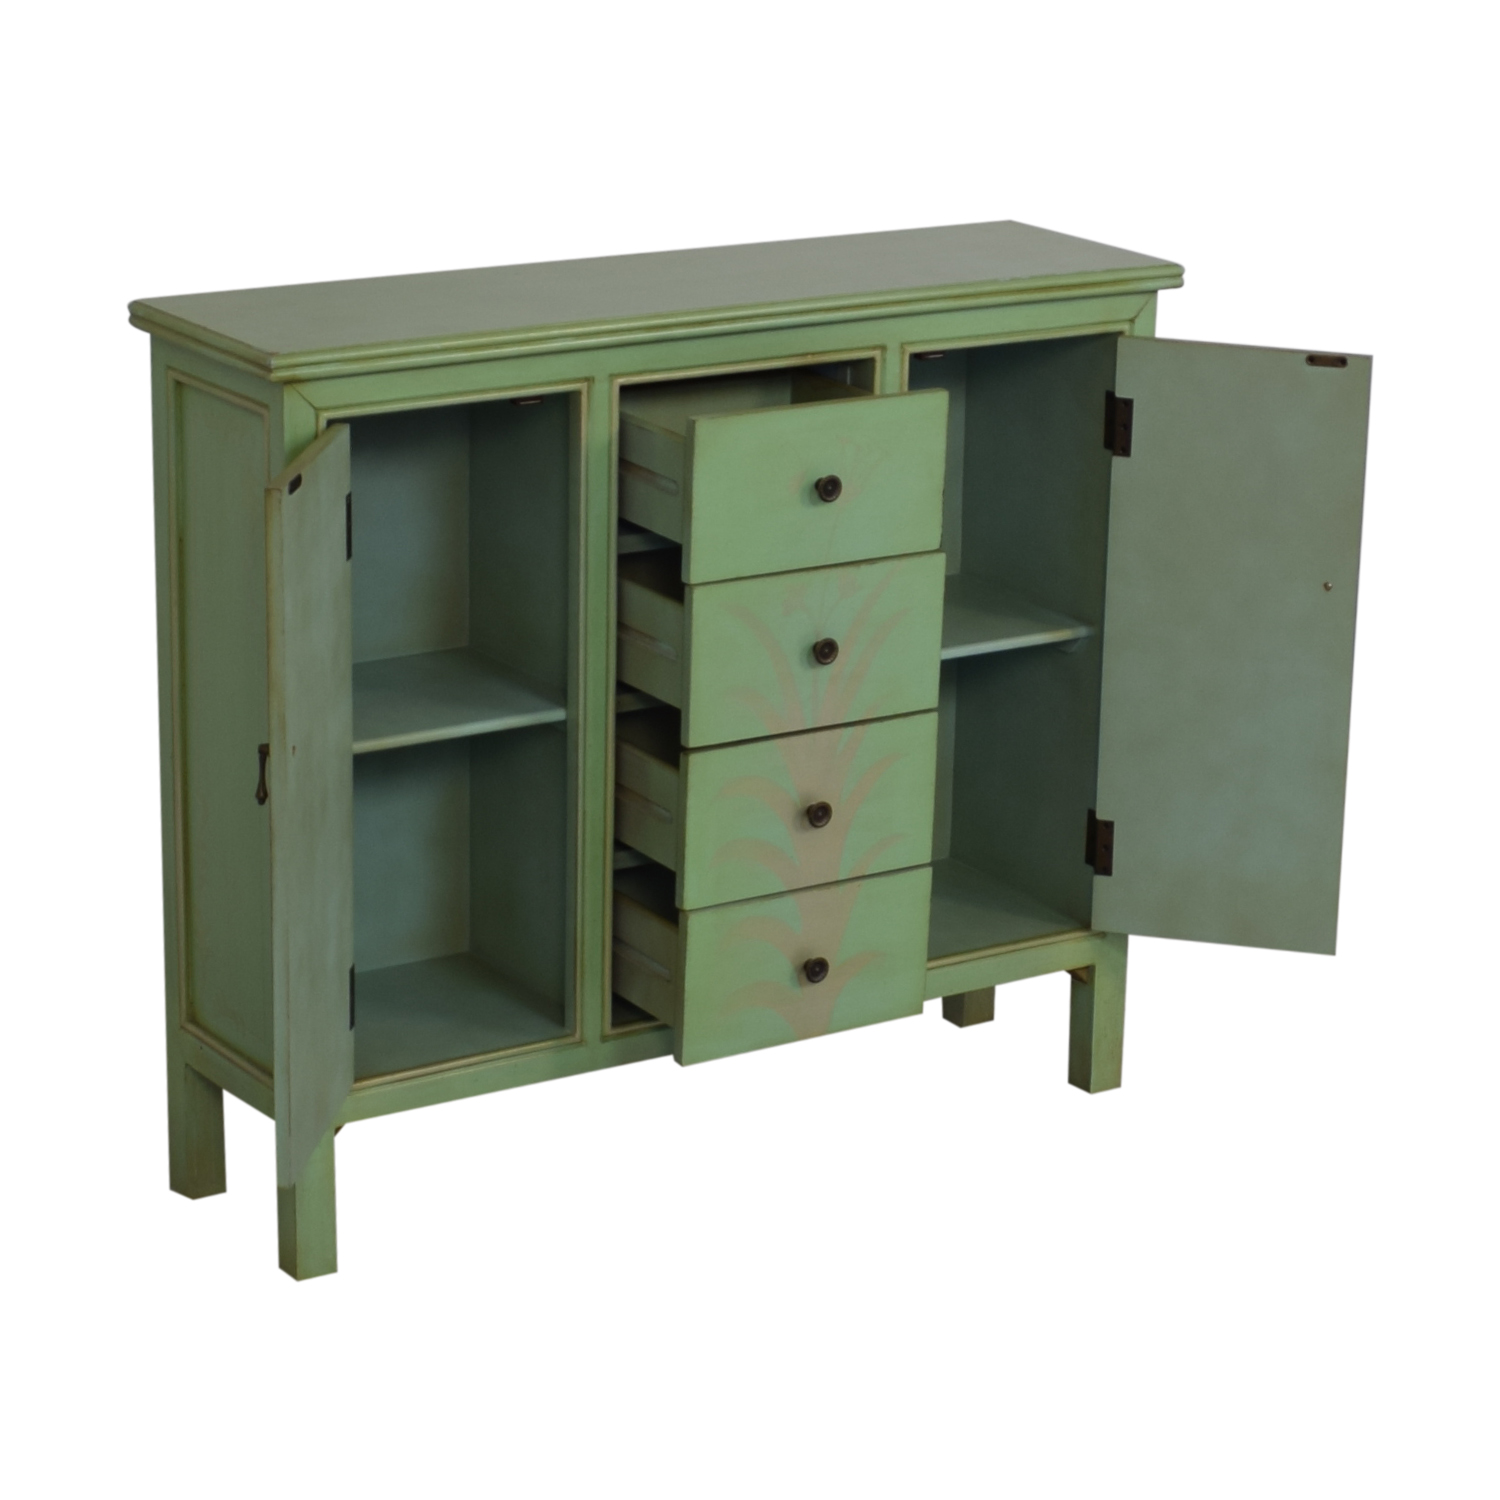 Raymour & Flanigan Raymour & Flanigan Mint Green Accent Chest green